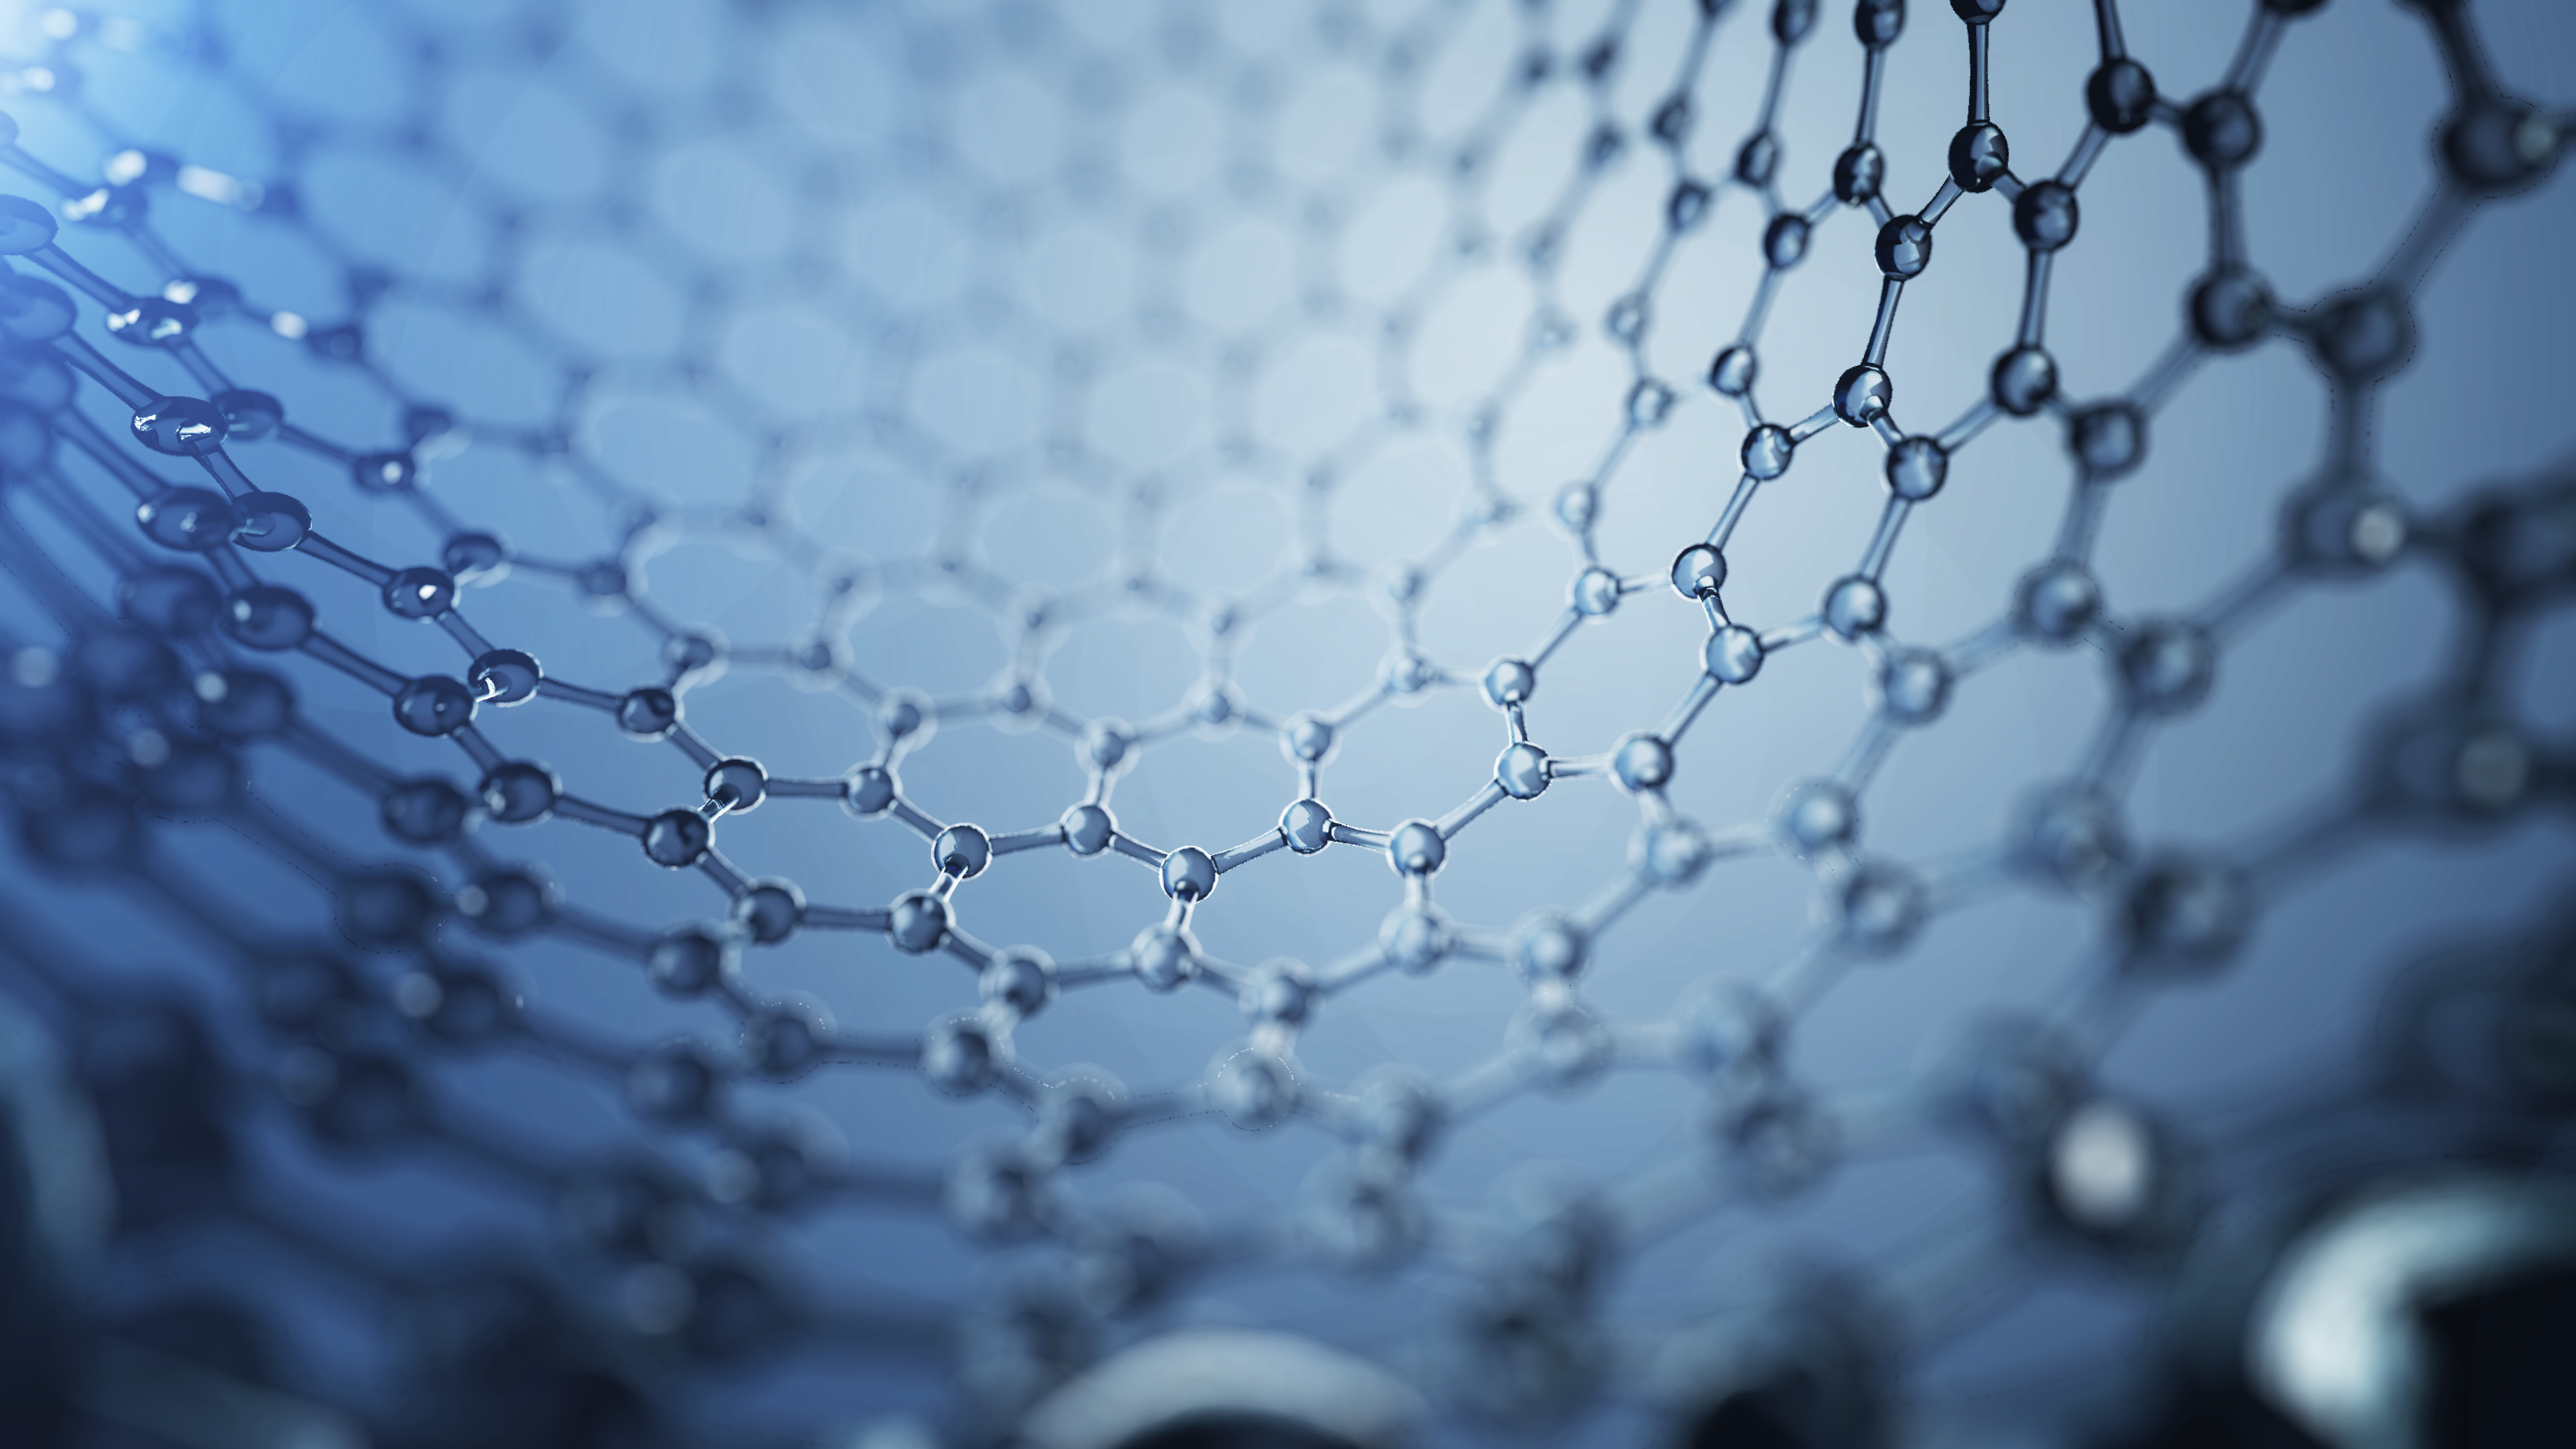 3d illusrtation of graphene molecules. Nanotechnology background illustration.